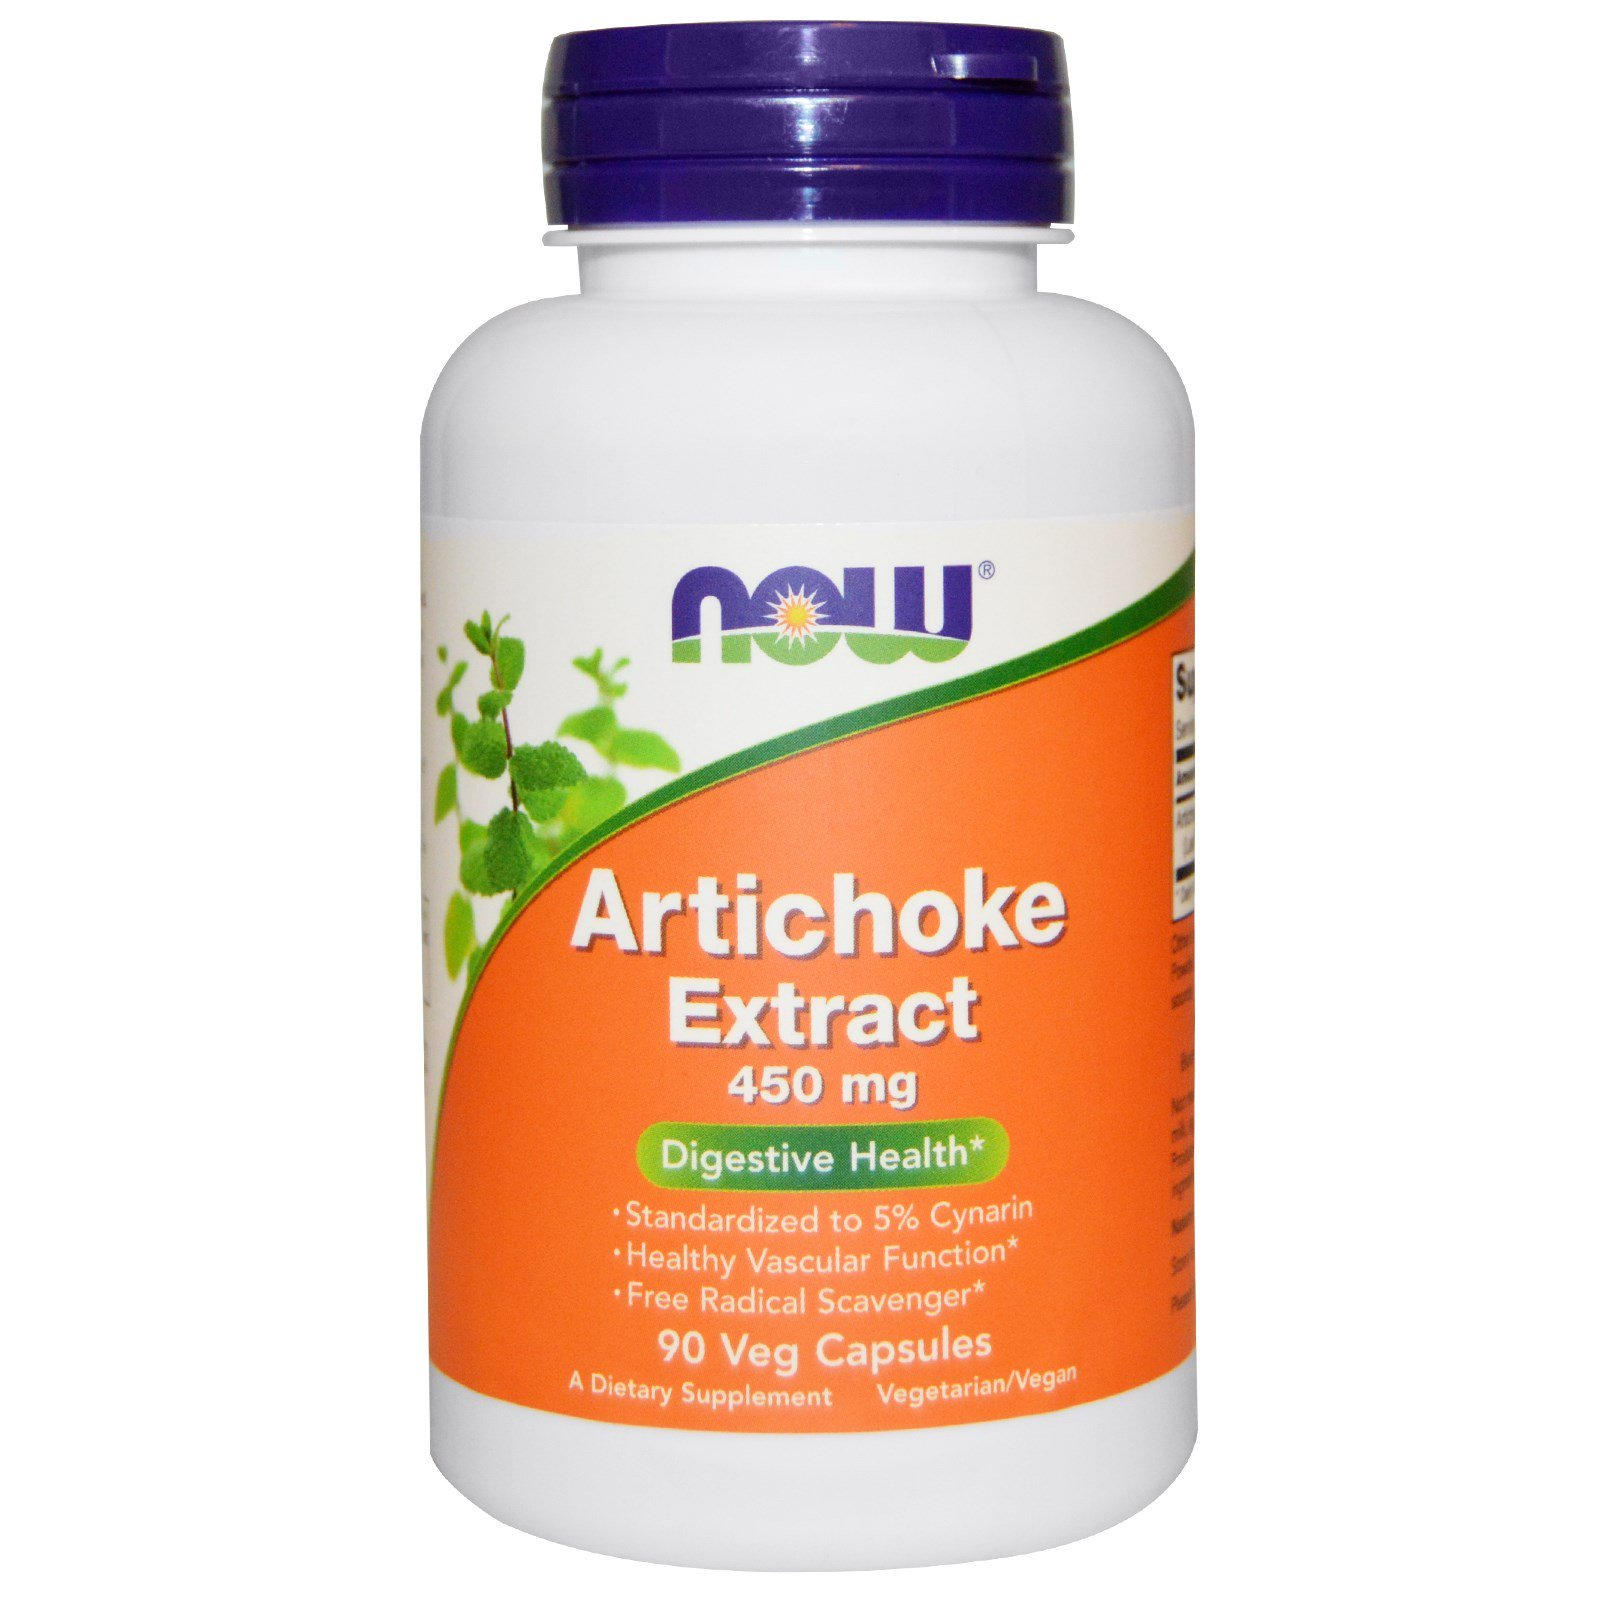 NOW Artichoke Extract, Артишок Экстракт 450 мг - 90 капсул